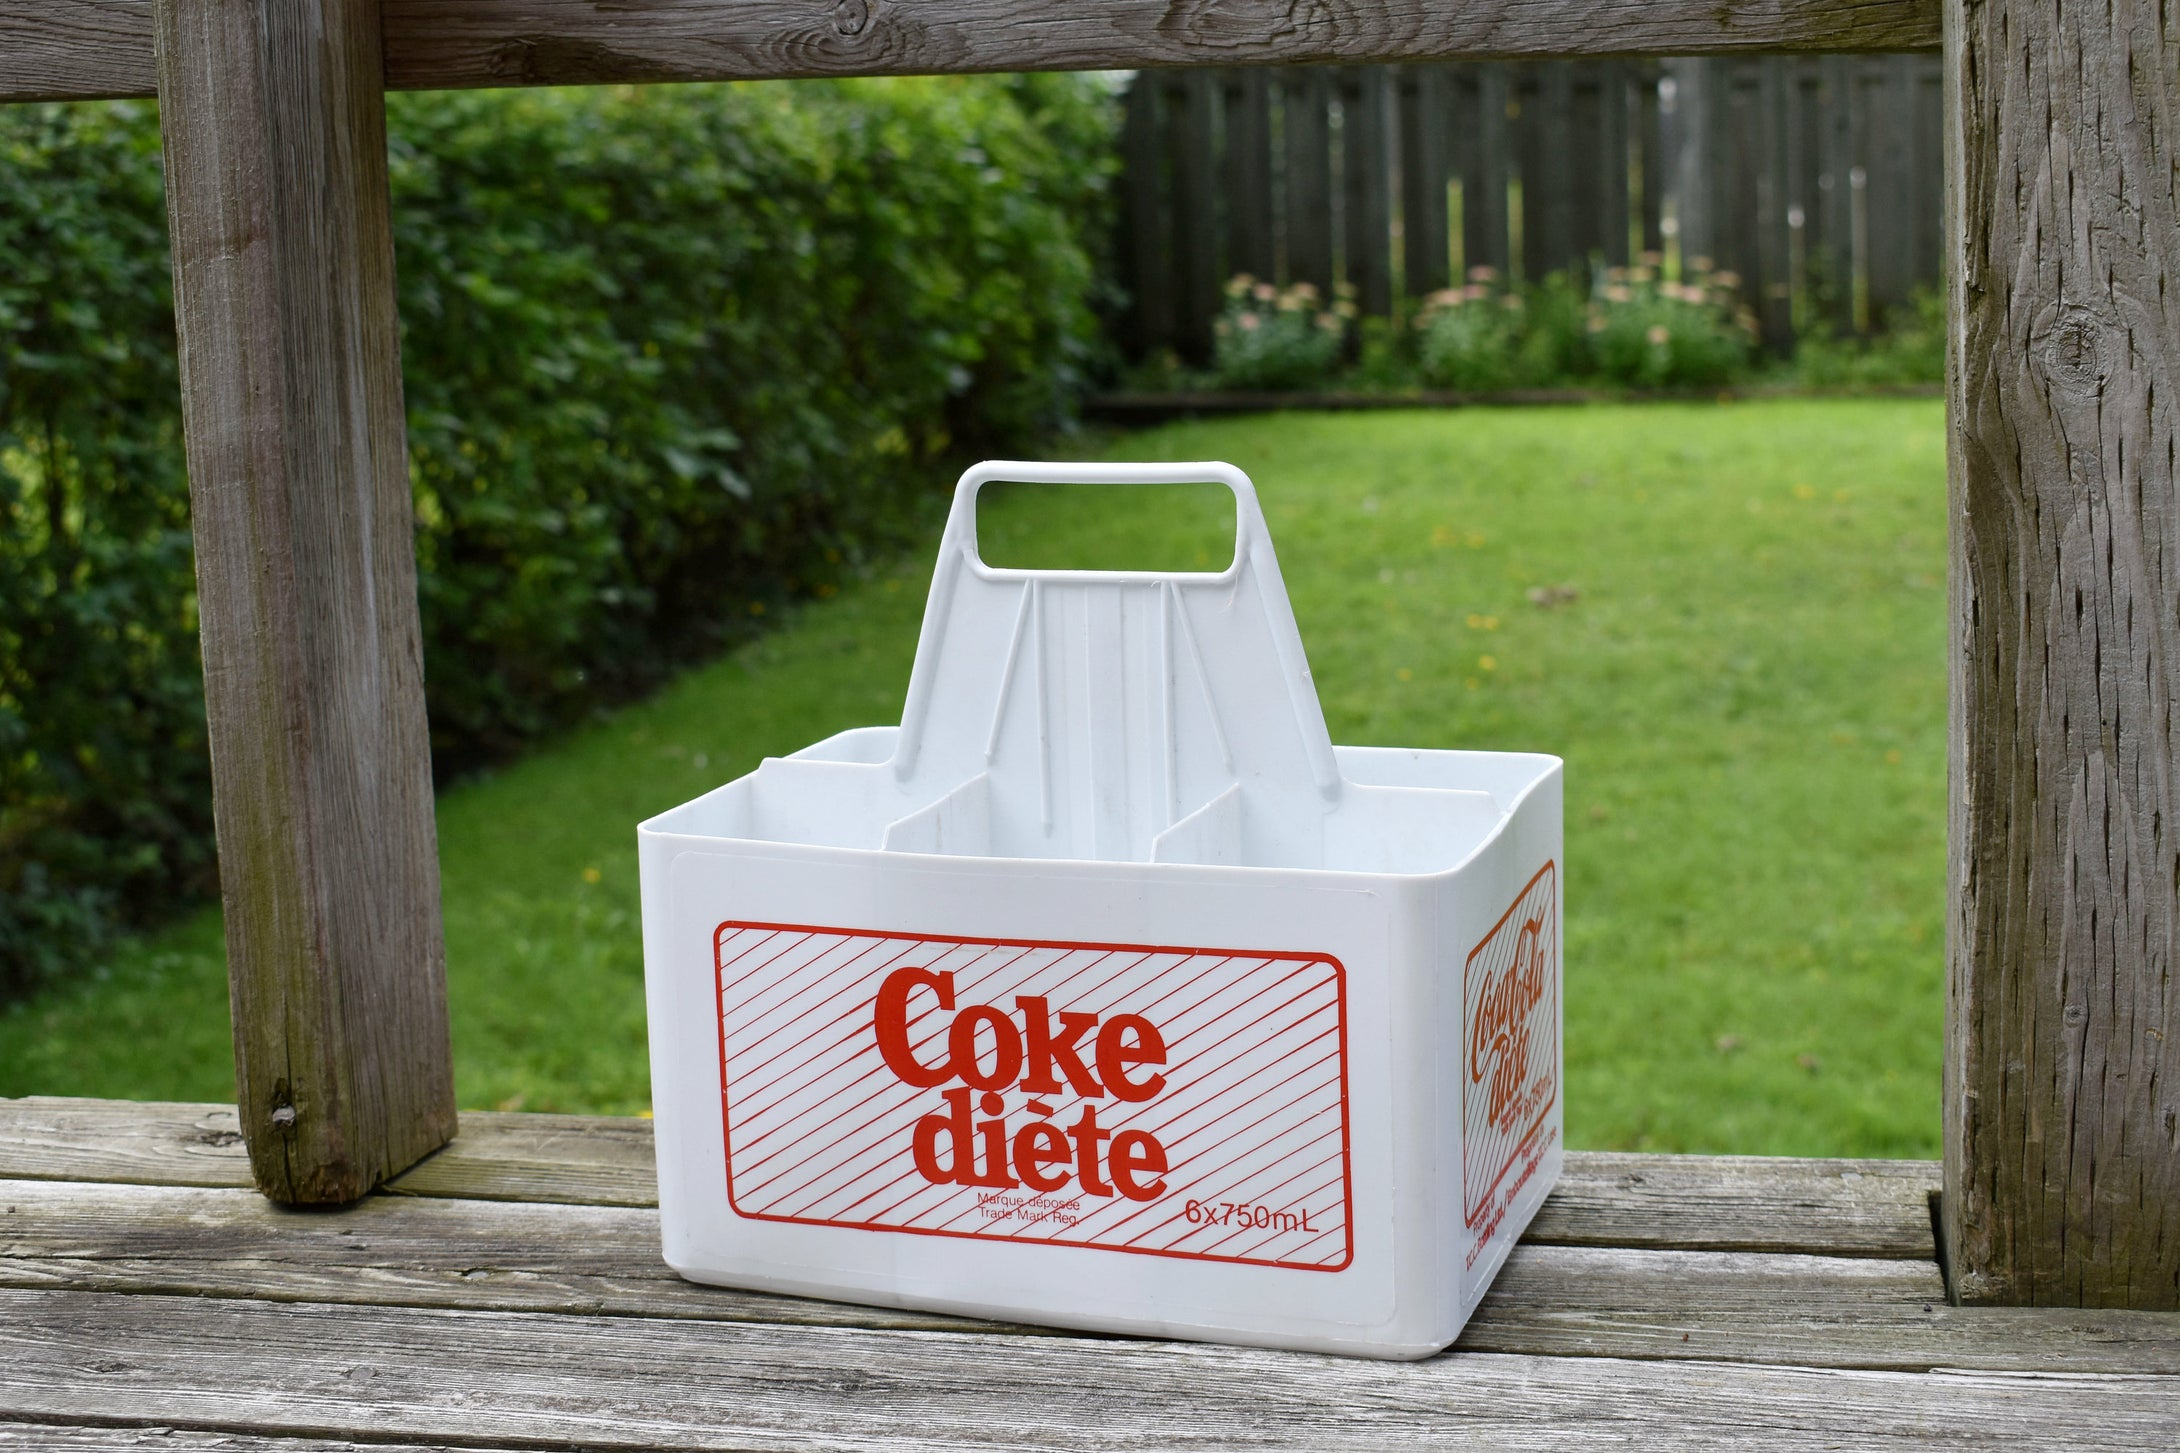 Diet Coke Plastic Crate - Soda Pop Bottle Case - Retro Soft Drinks - CocaCola - Coke Bottle Box - Lot 1